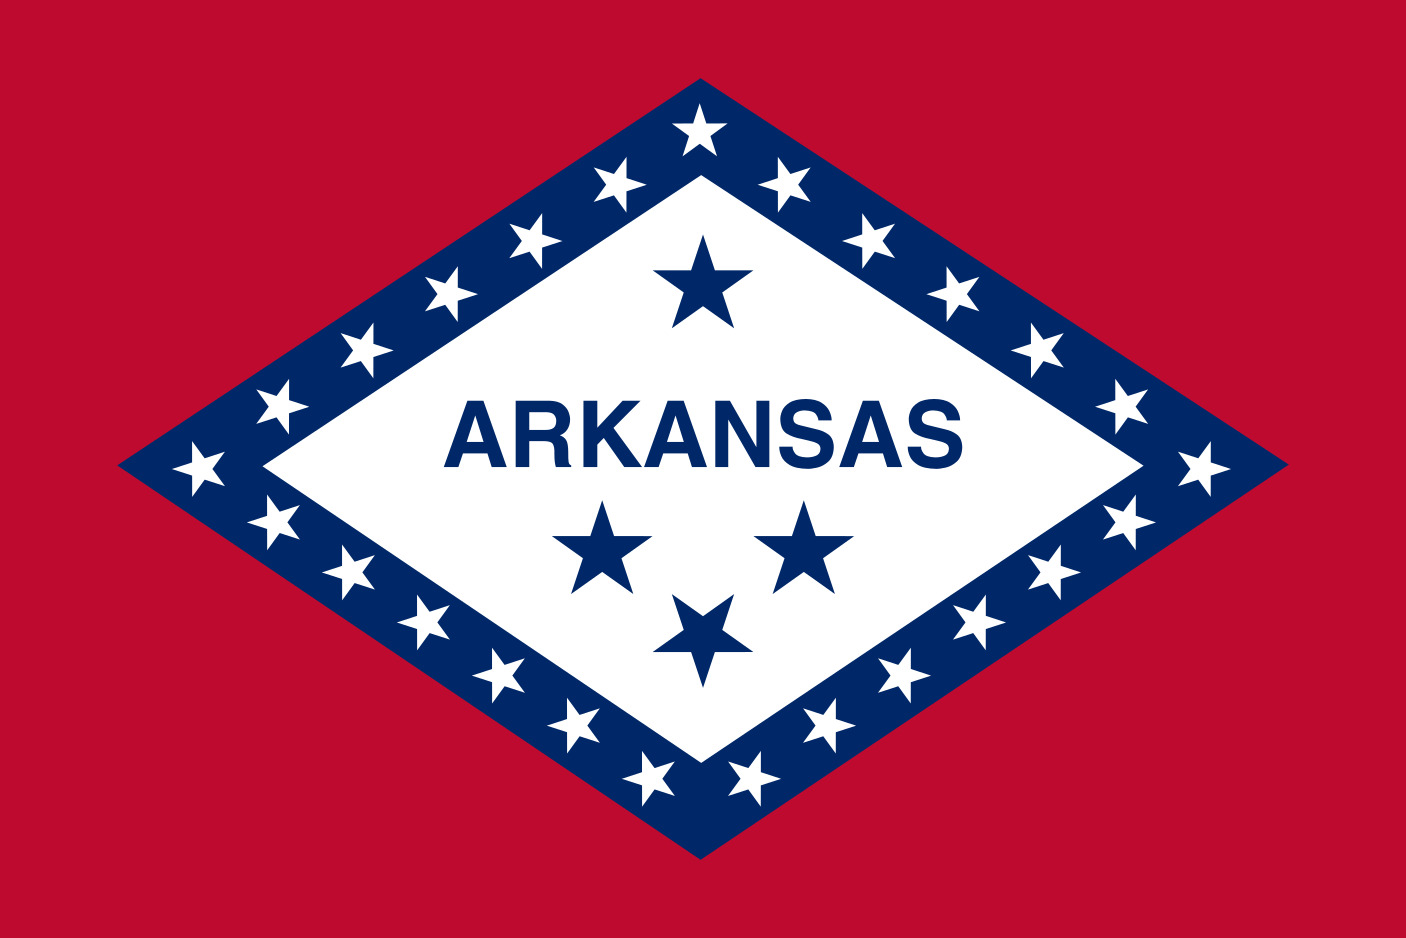 Arkansas State Flag Colors